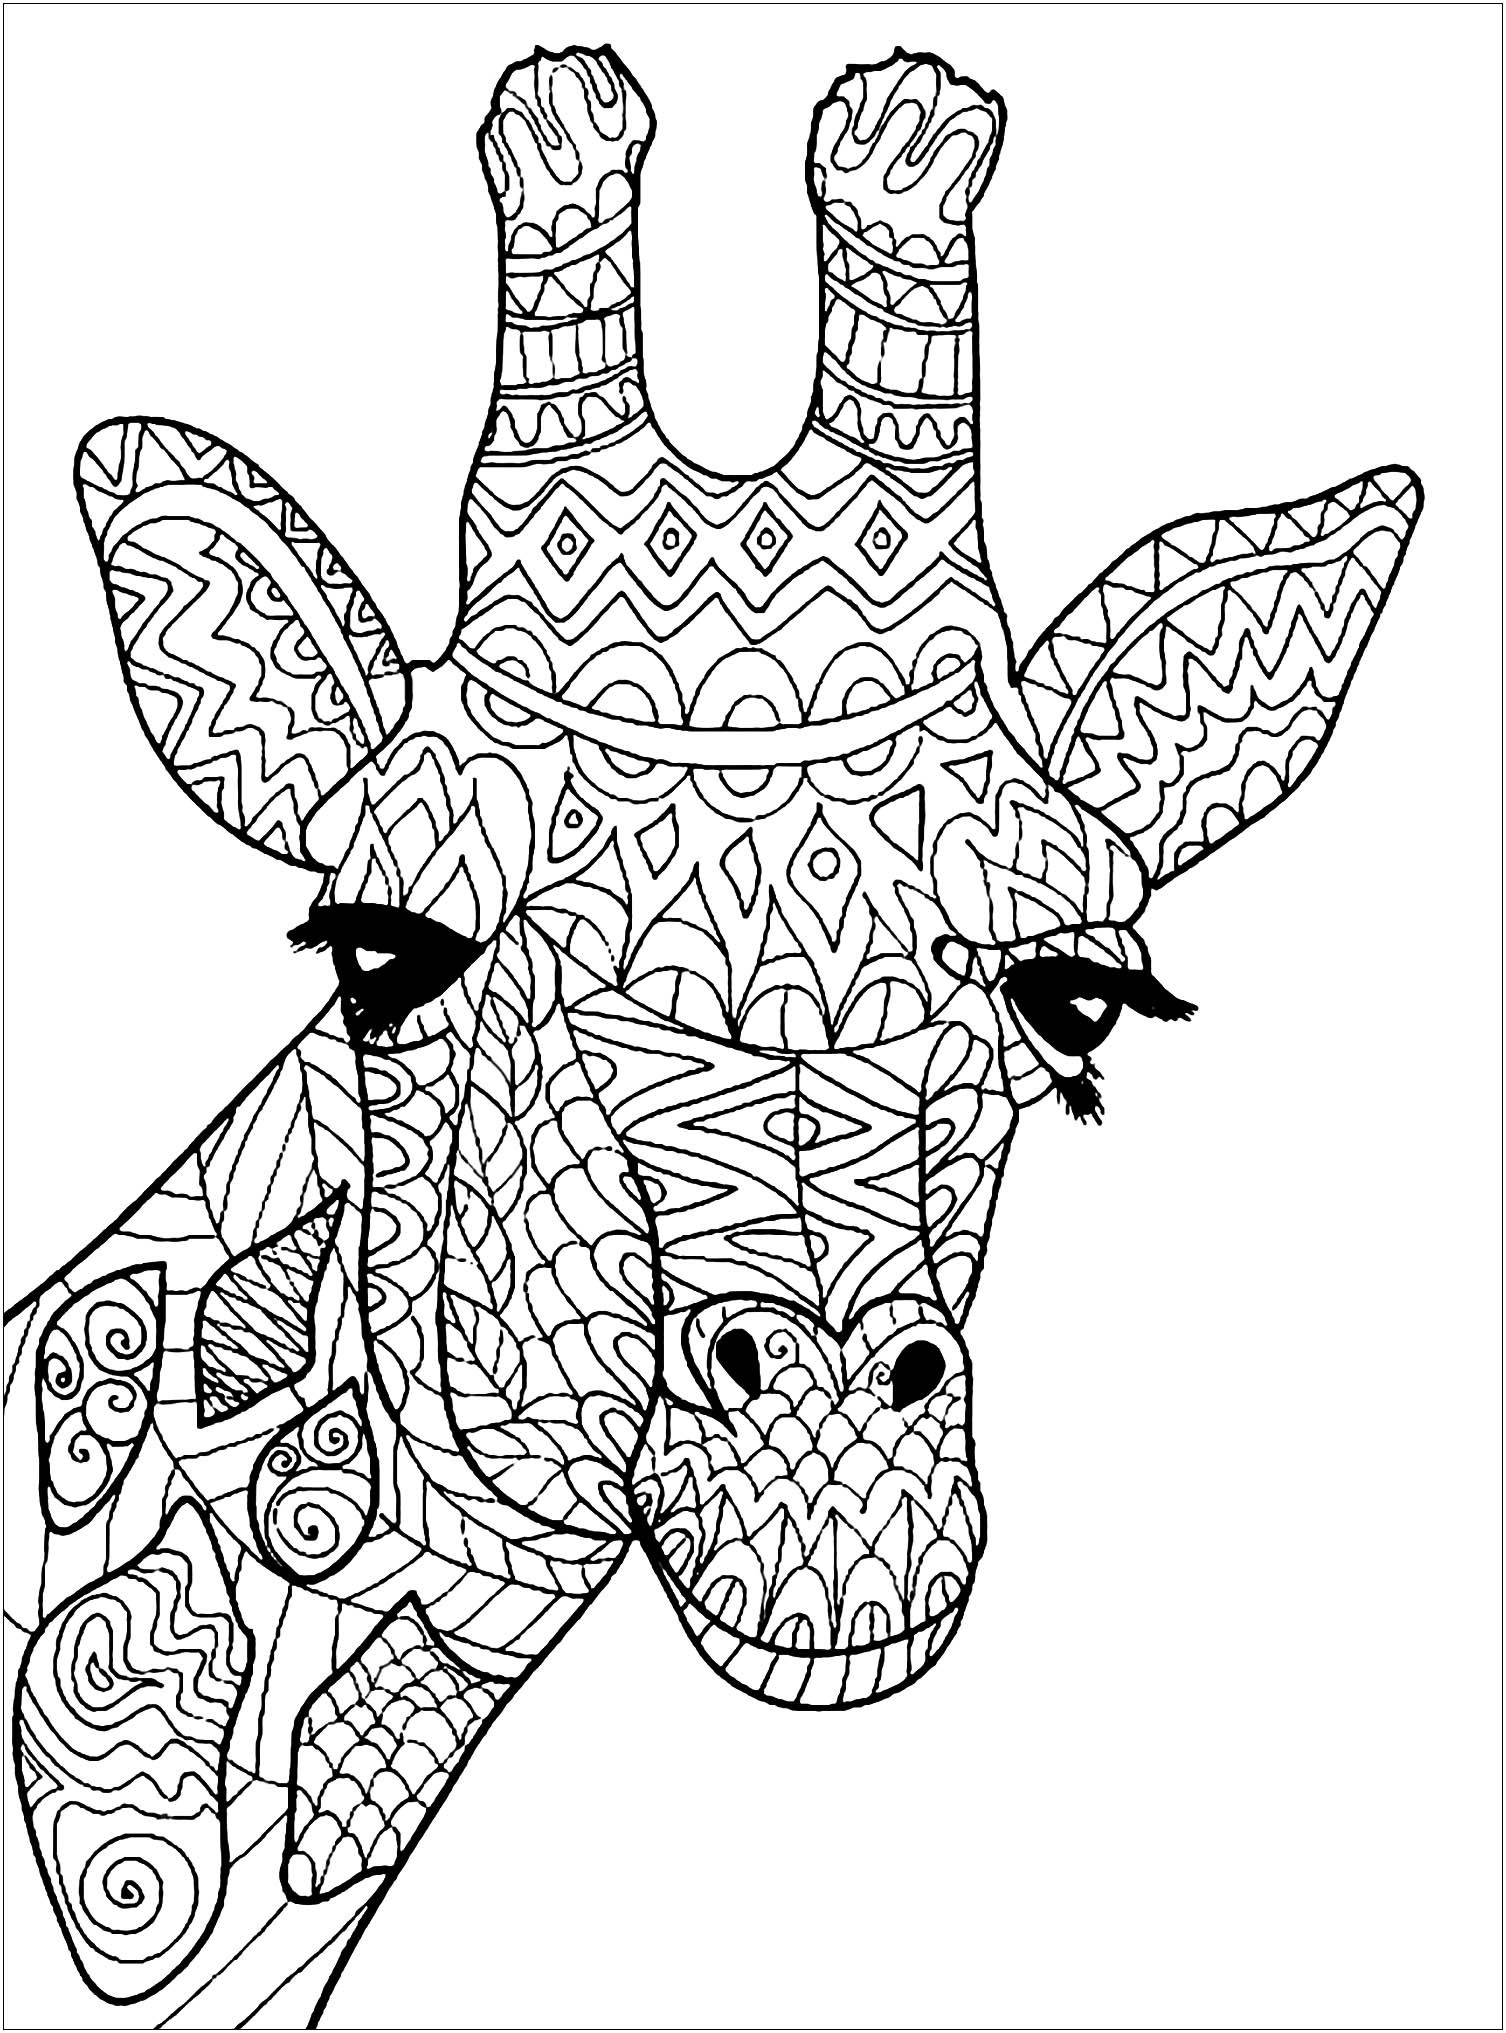 detailed animal coloring pages seahorse coloring pages for prek in 2020 horse coloring detailed coloring animal pages